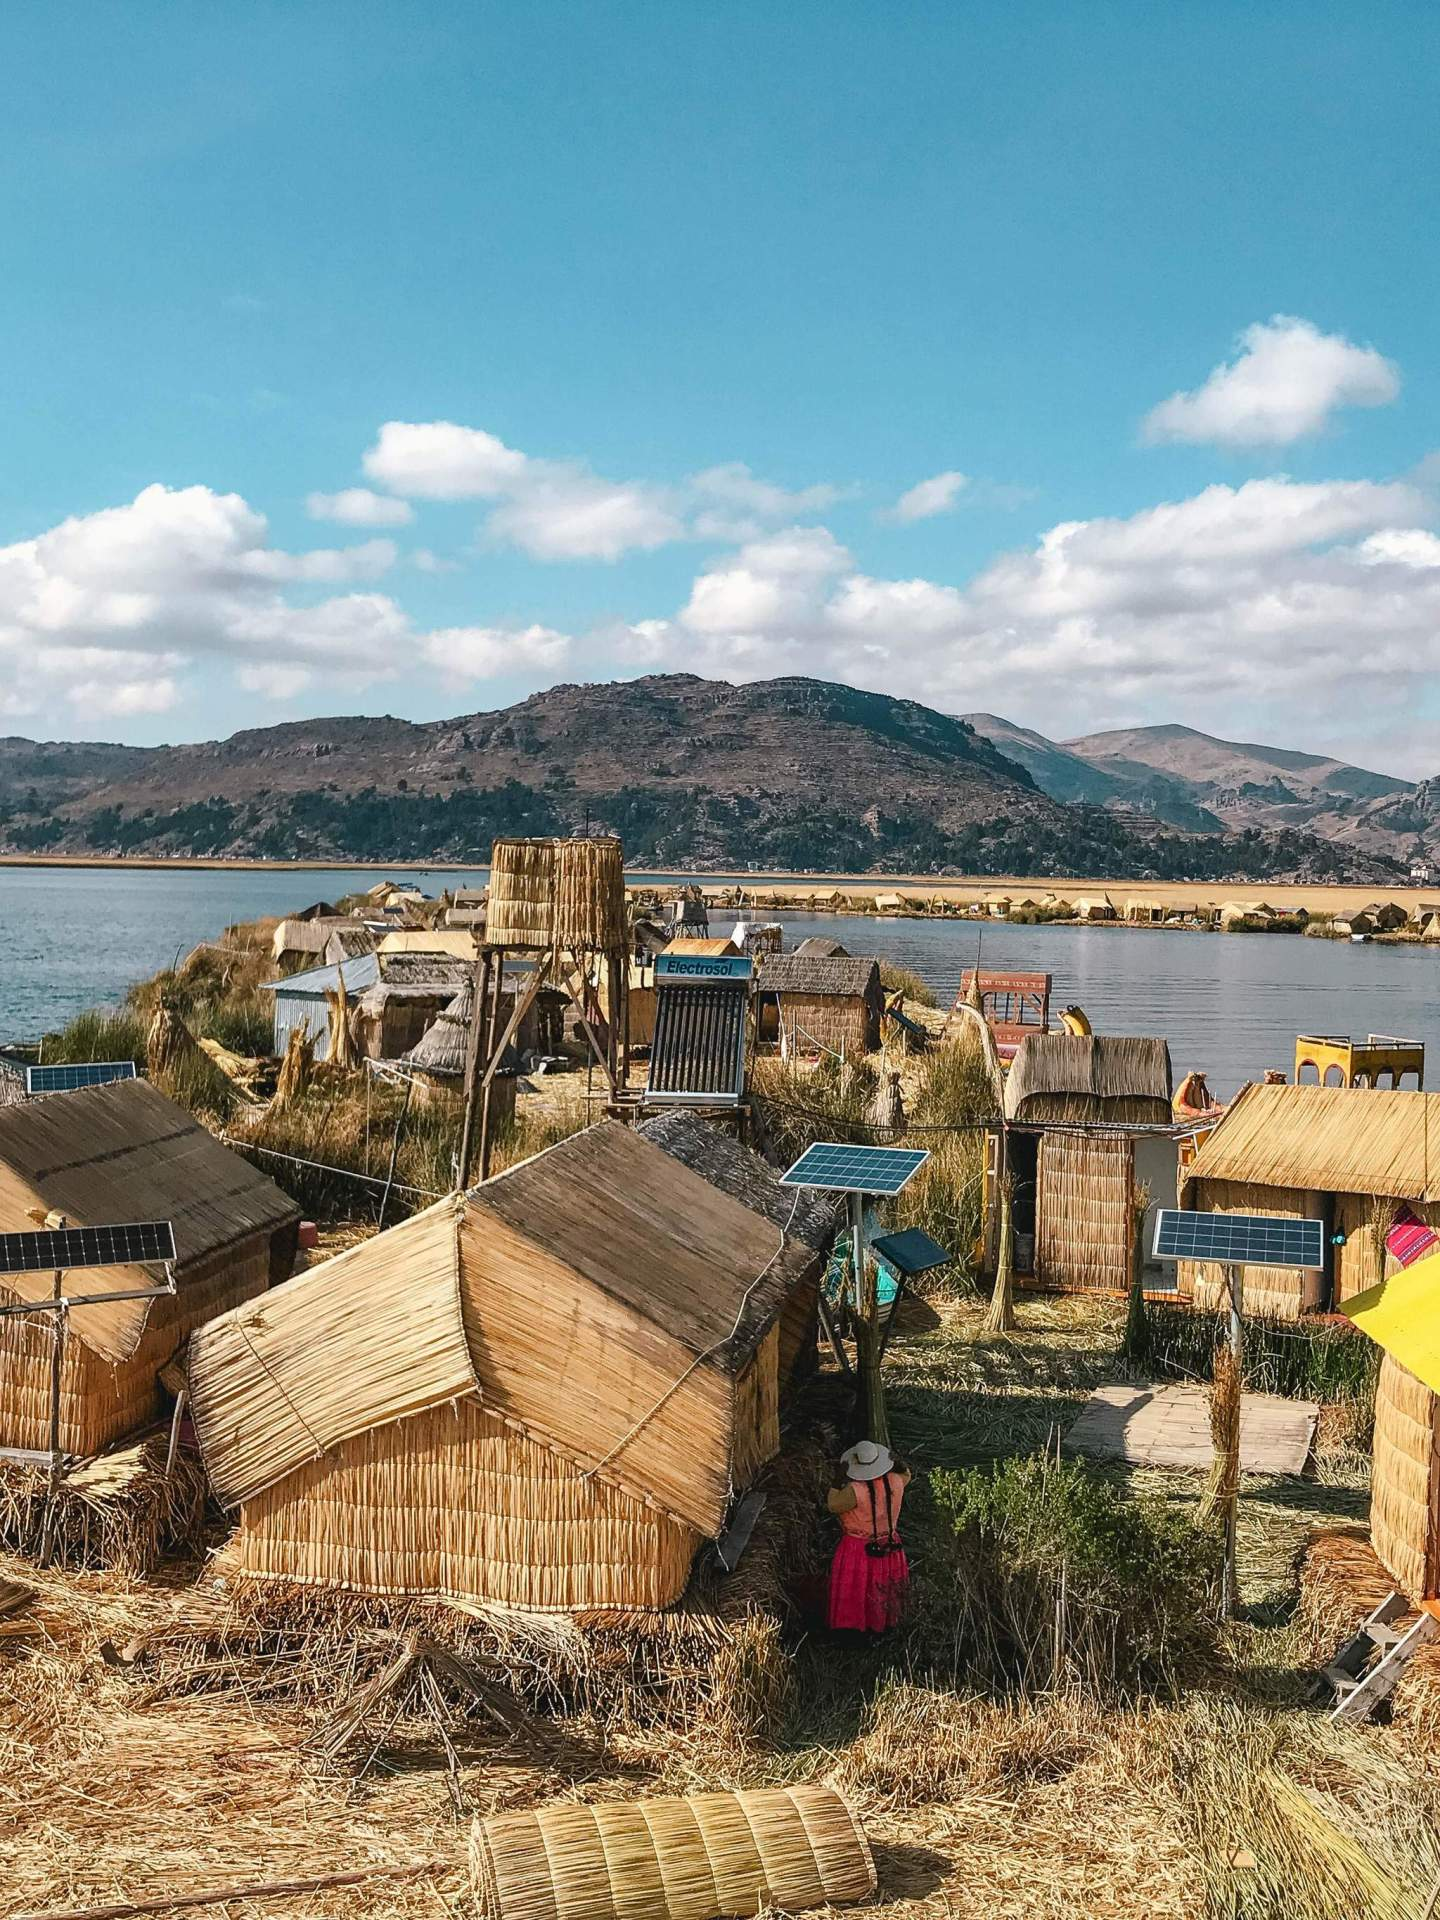 Uros-Islands Homestay-Review-Titicaca-Sariri-Lodge-2